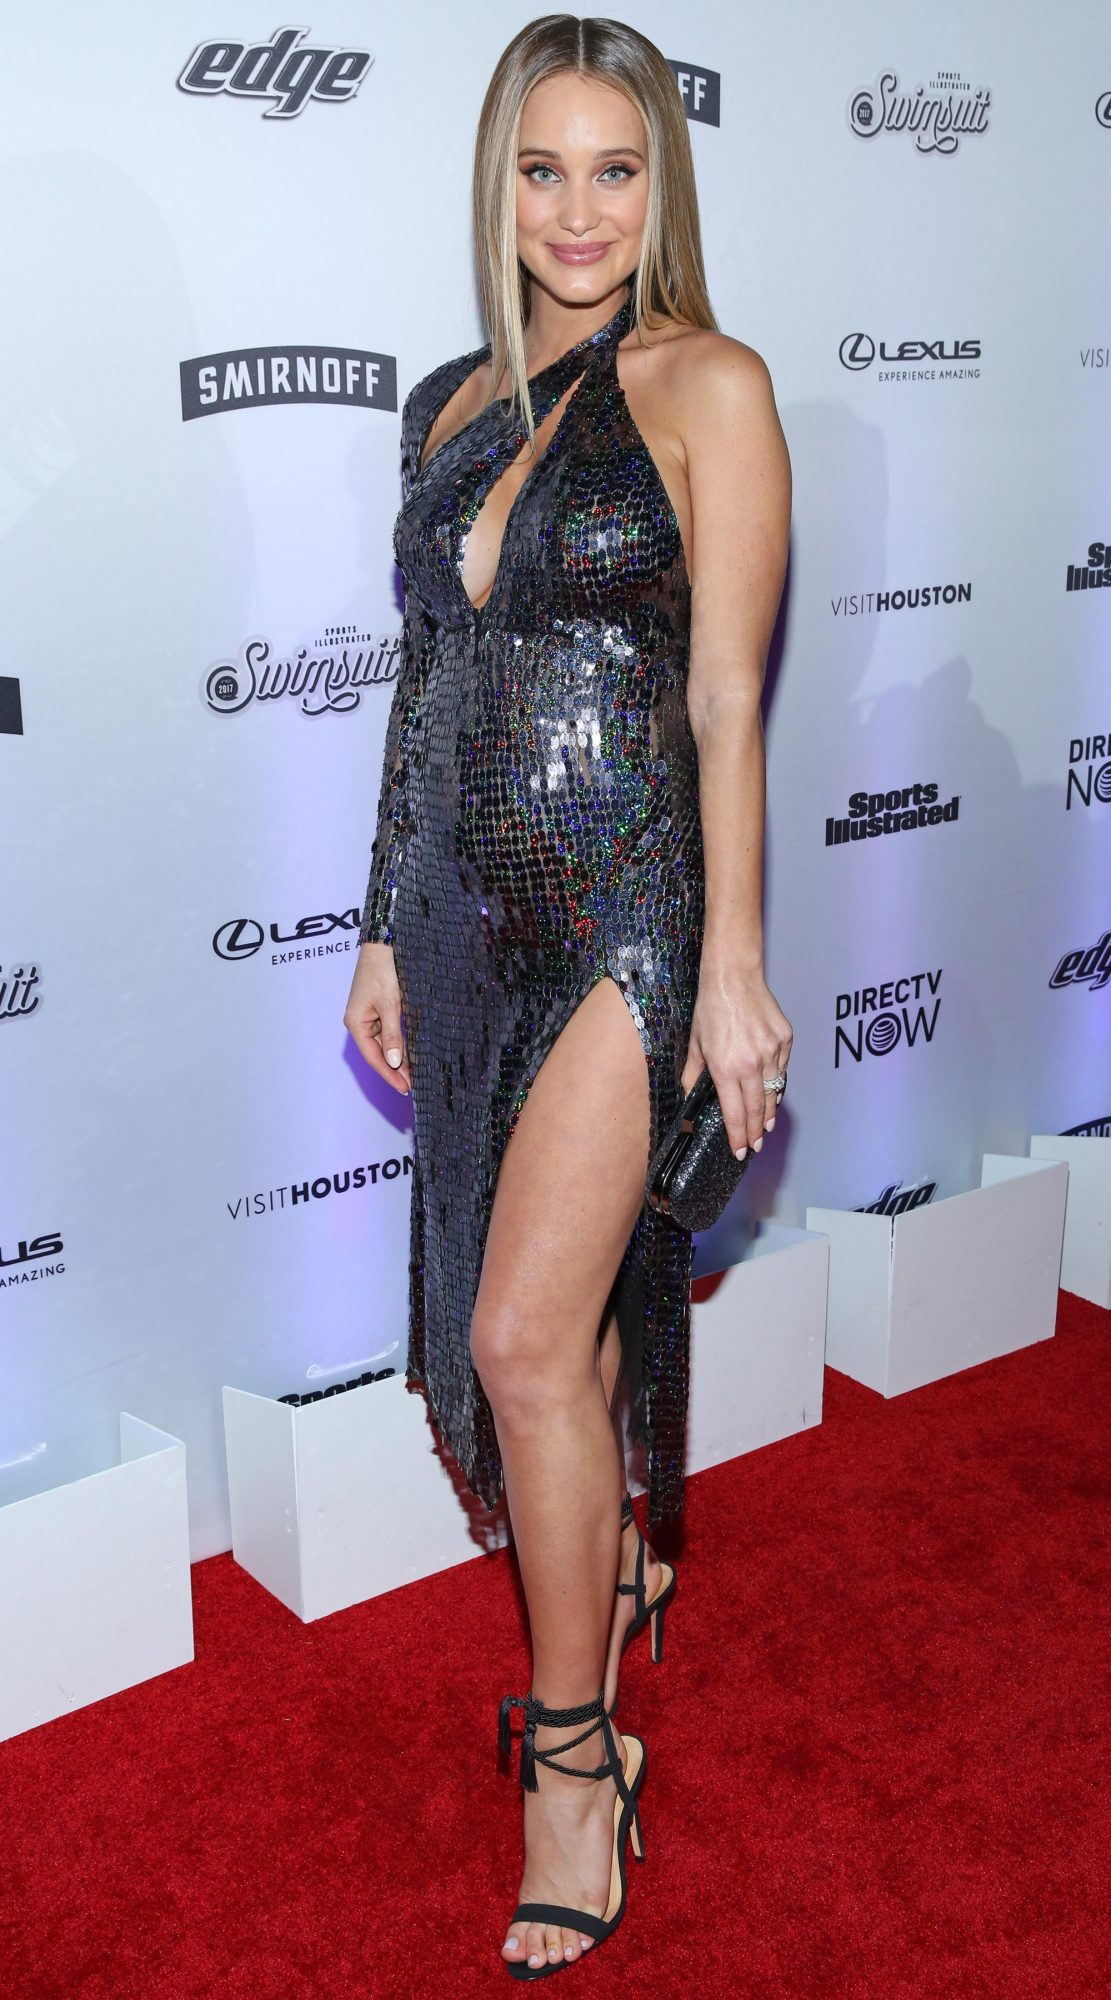 2017 Sports Illustrated Swimsuit Edition launch event